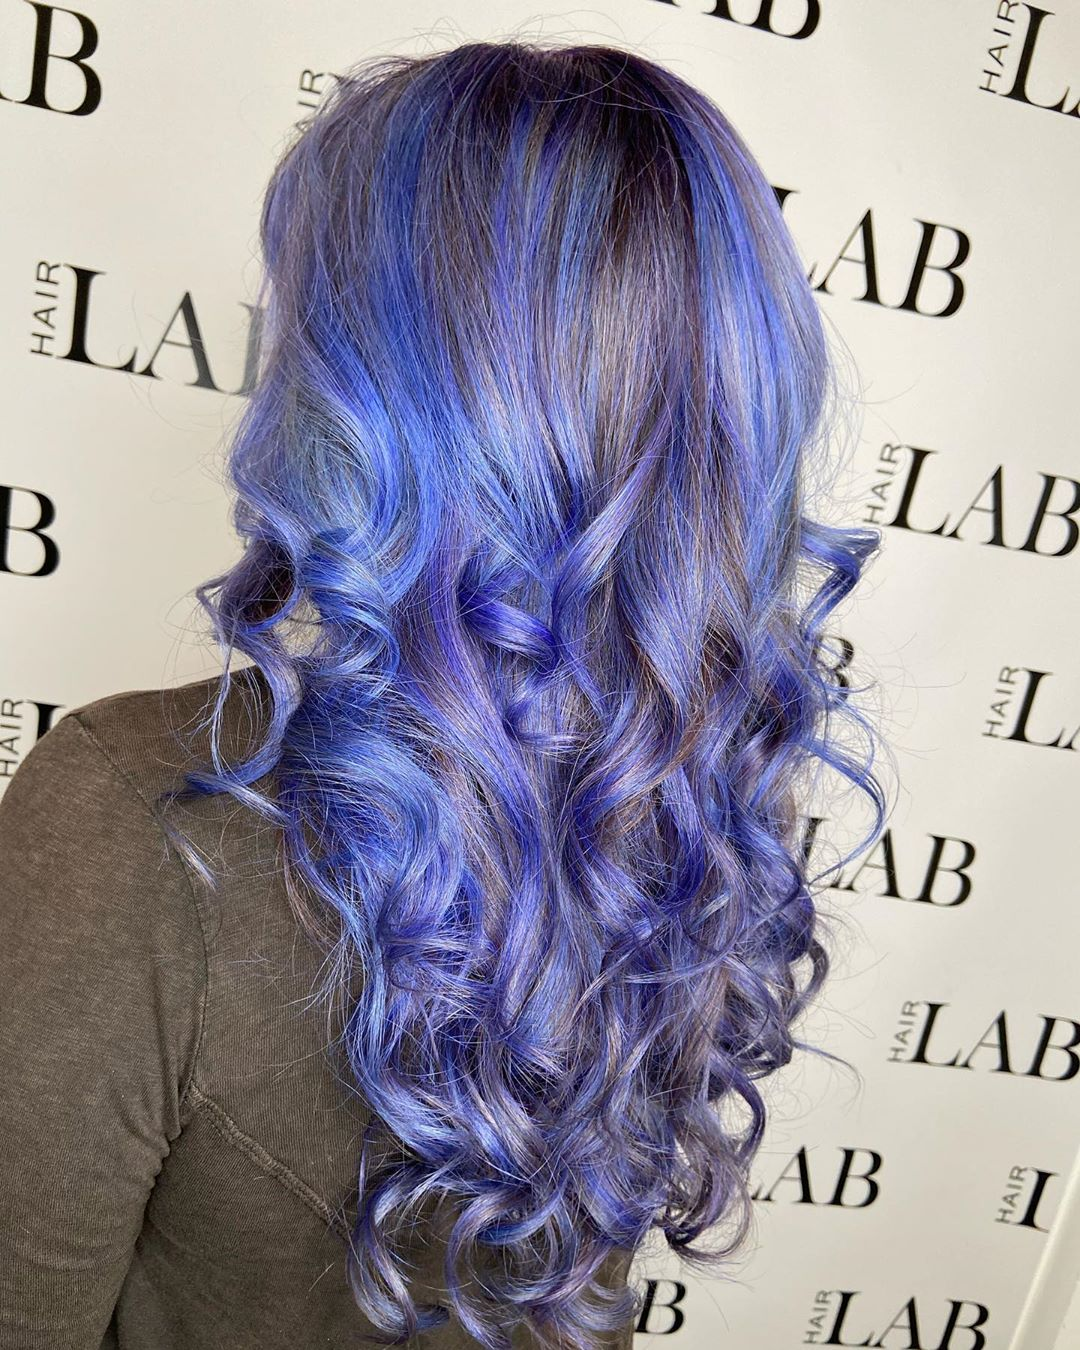 NEW CLIENT HAIR COLOUR OFFER AT HAIRLAB HAIR SALON IN BASINGSTOKE